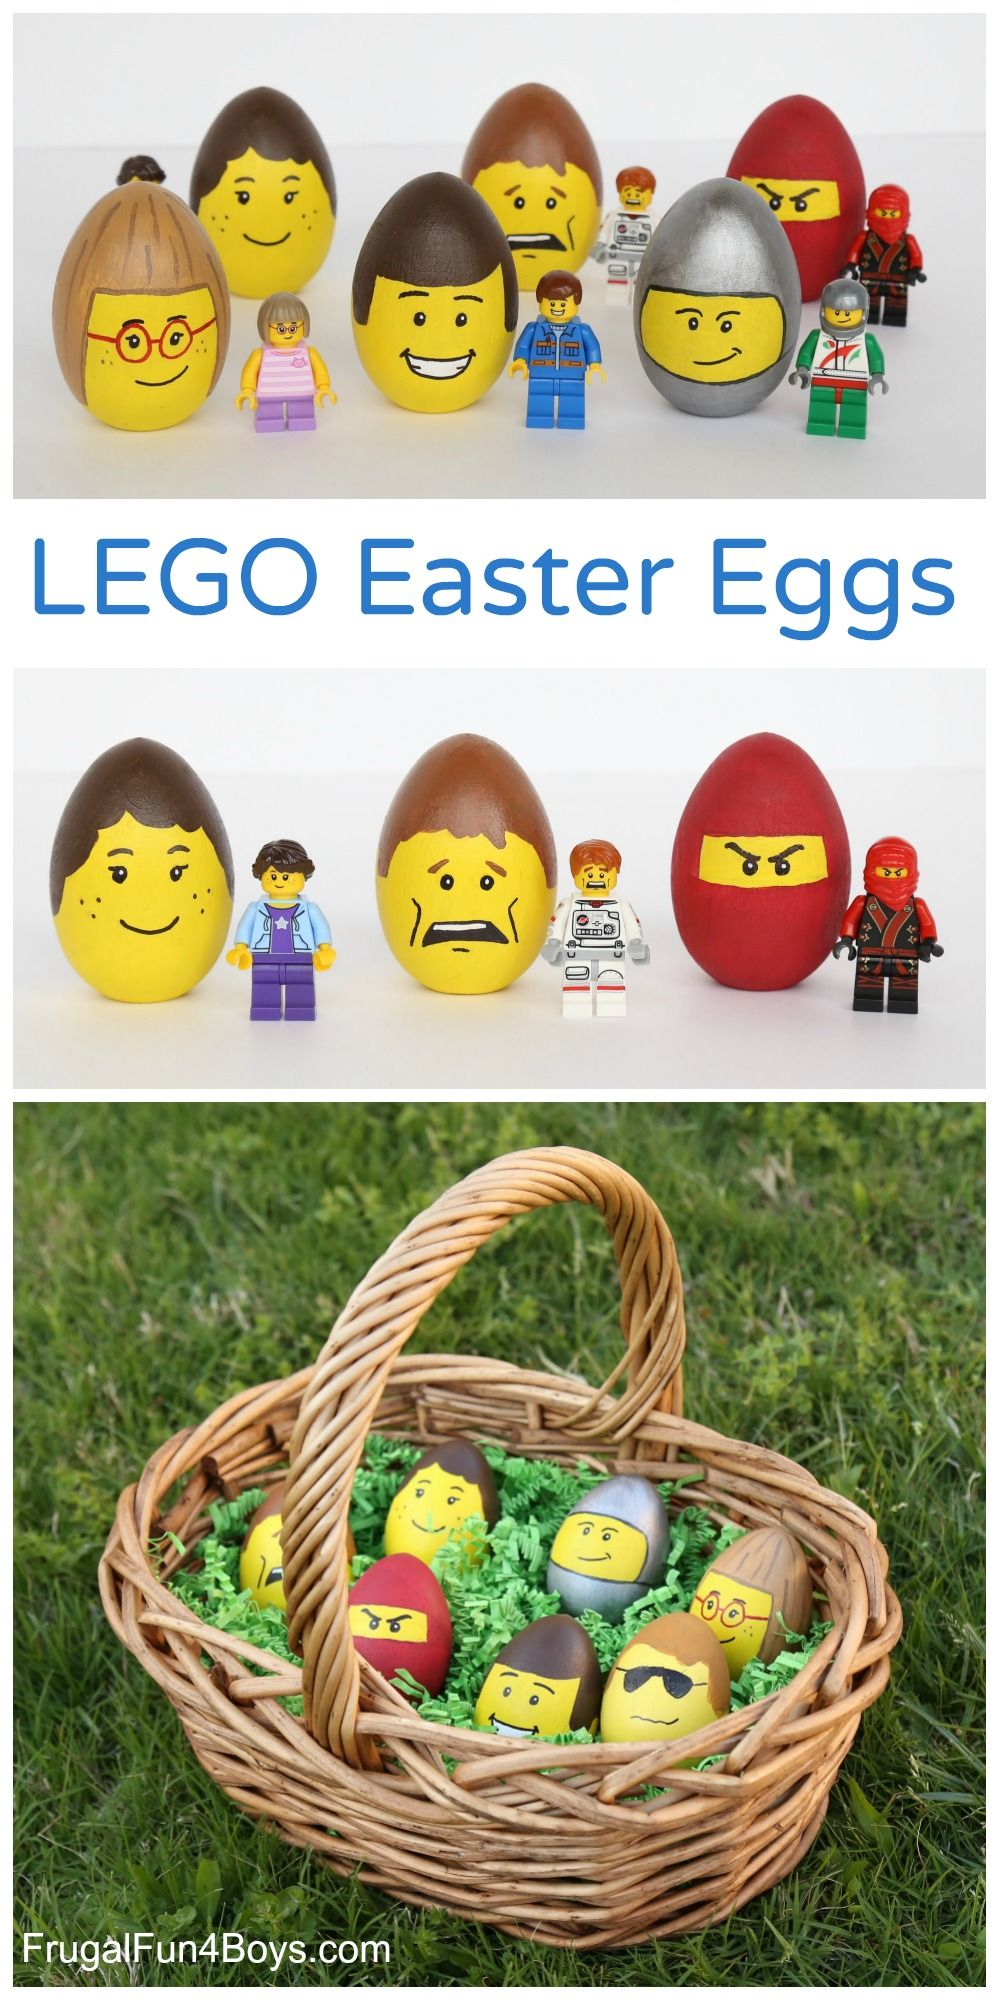 Lego Minifigure Decorated Easter Eggs Frugal Fun For Boys And Girls Easter Crafts For Kids Easter Egg Decorating Fun Easter Crafts